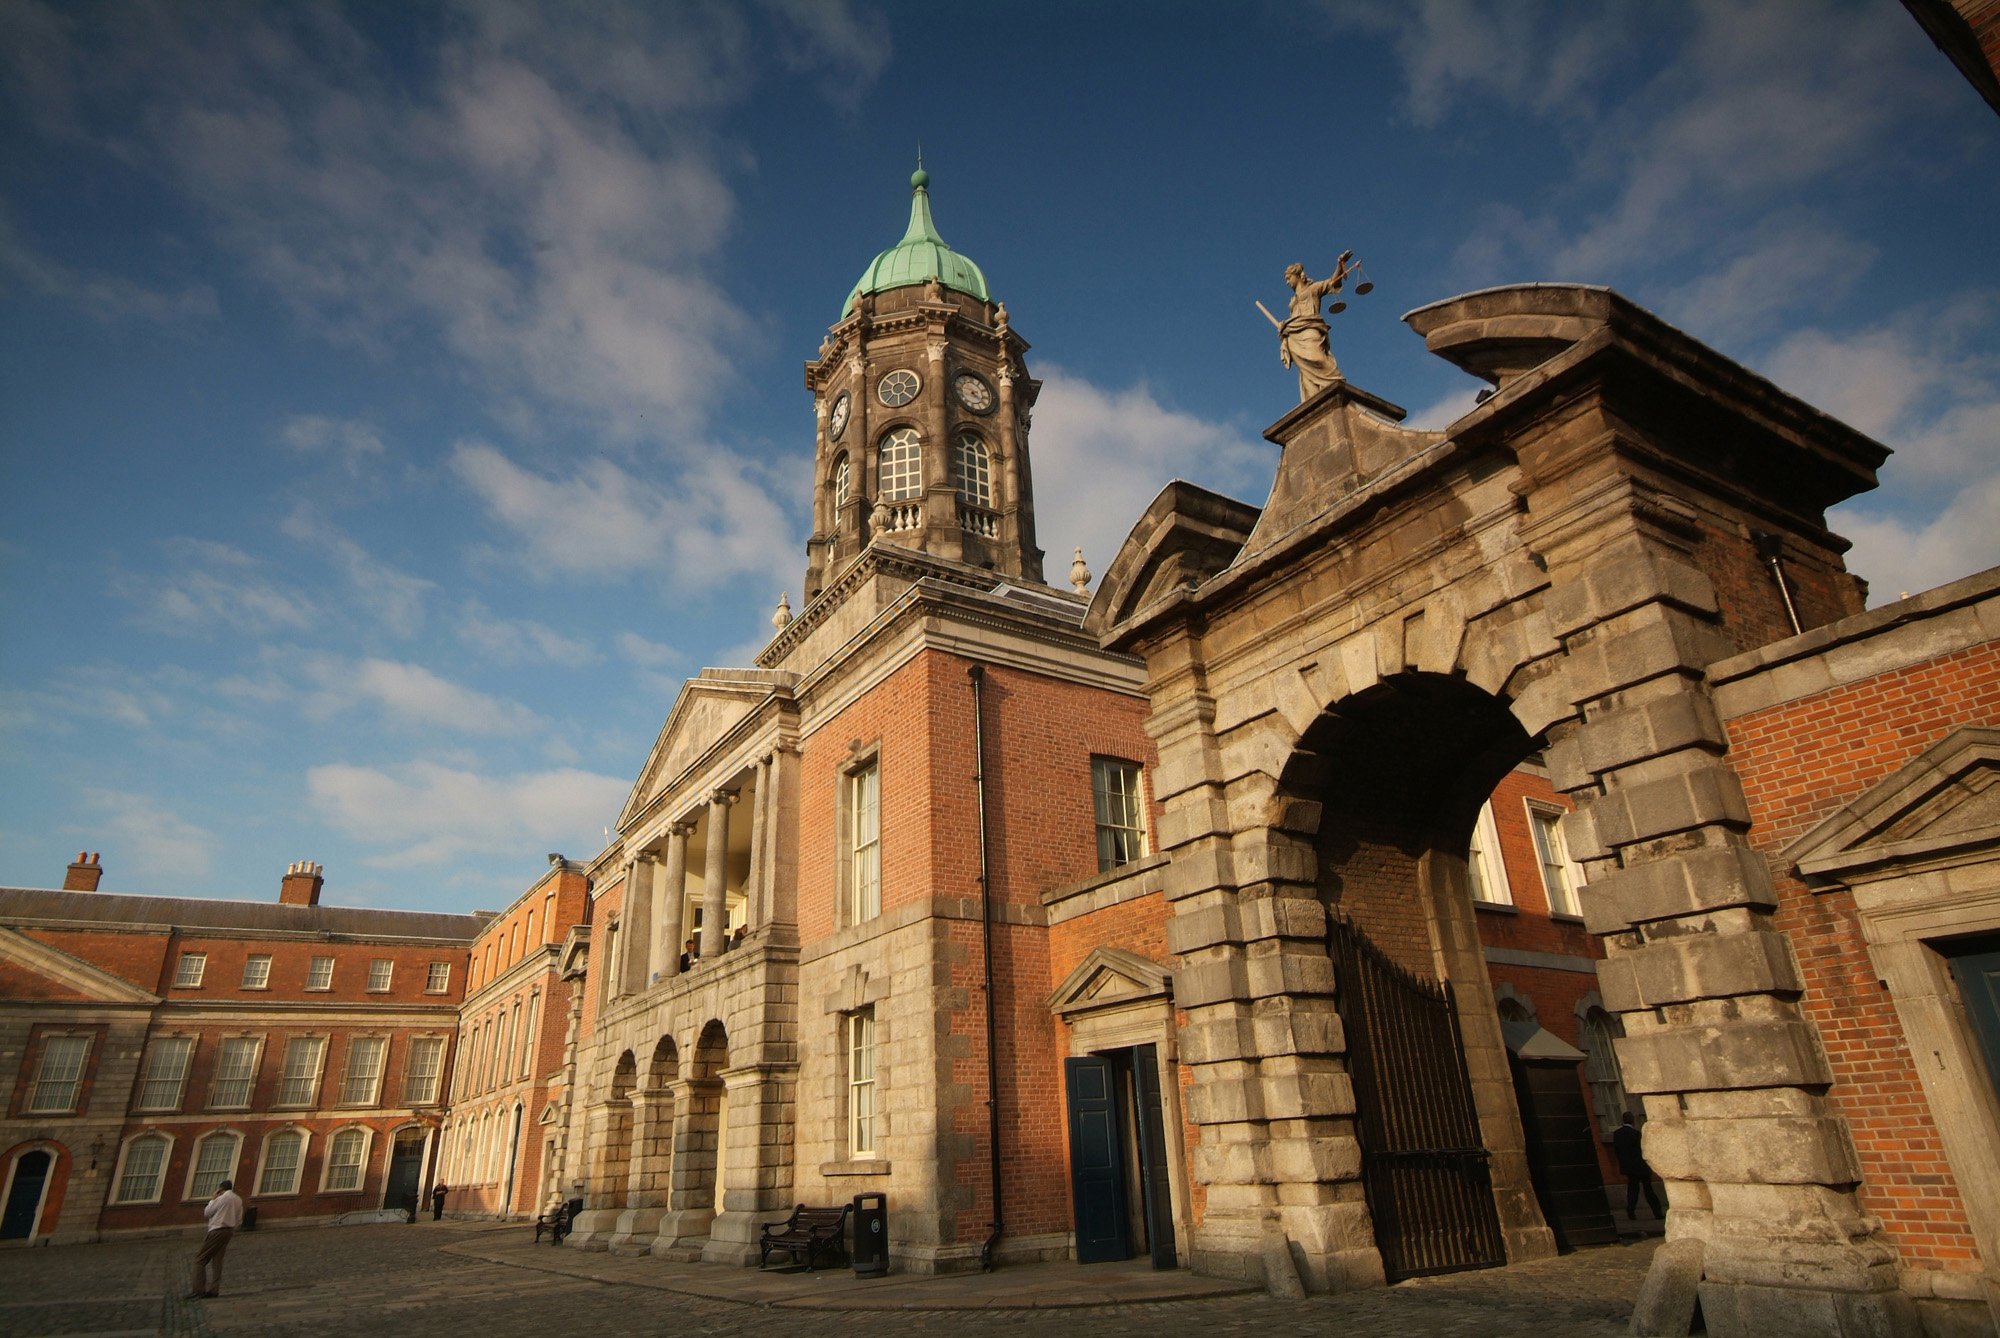 Dublin Castle is the heart of historic Dublin and is where the city gets its name from the Black Pool - 'Dubh Linn' which was on the site of the present Castle garden. The Castle houses the magnificent State Apartments part of the Viceregal court.